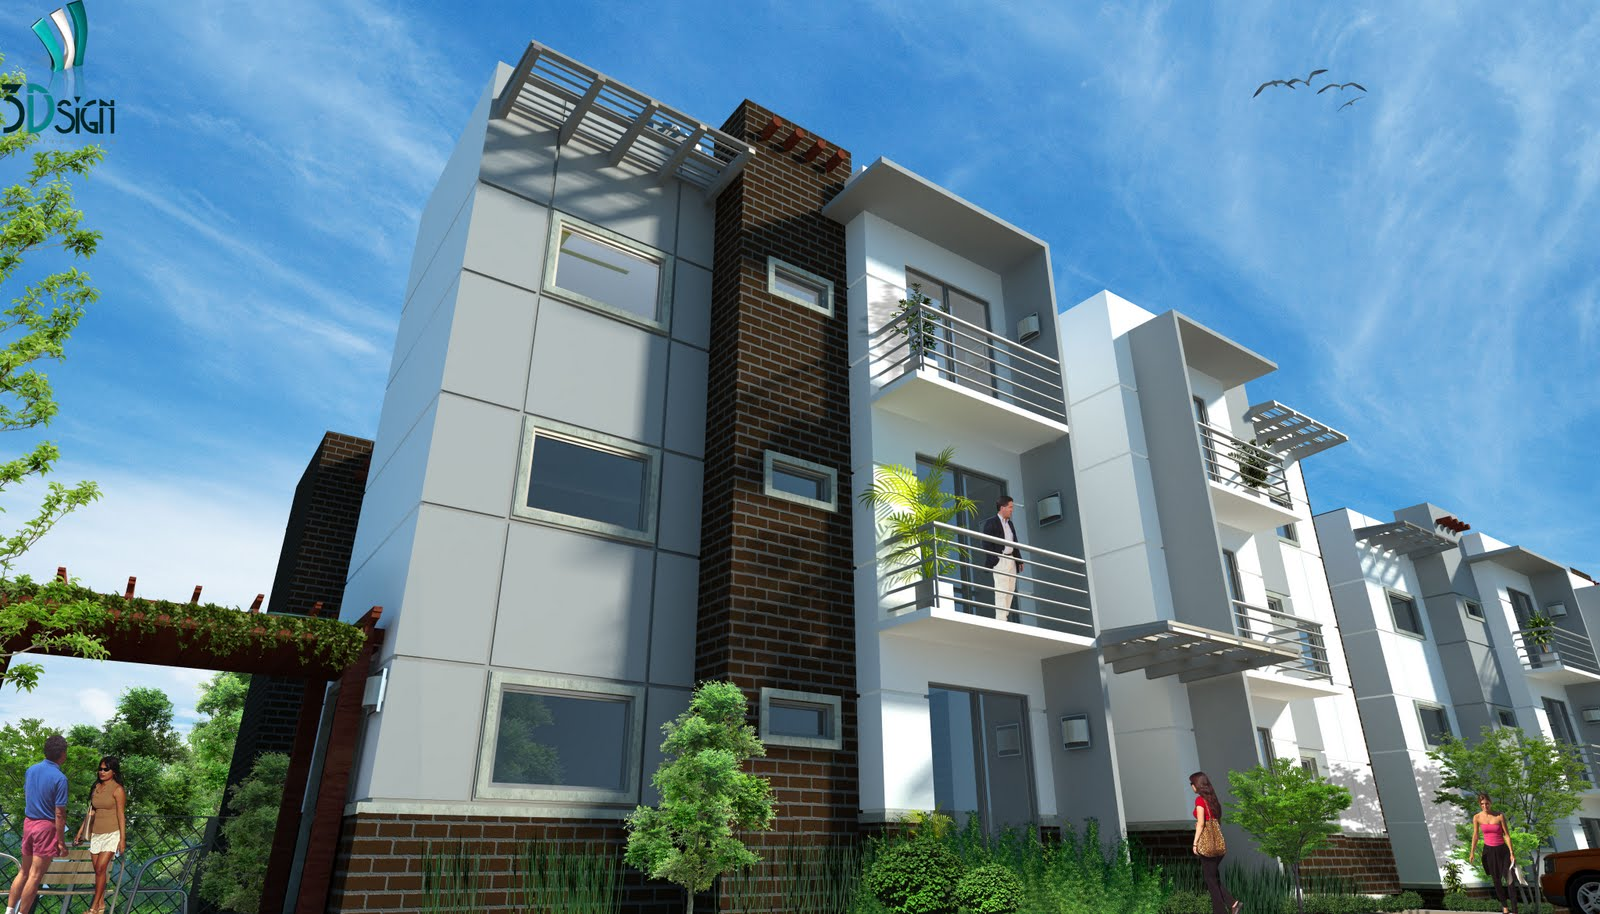 15 Best Simple Architectural Designs For Apartments Ideas